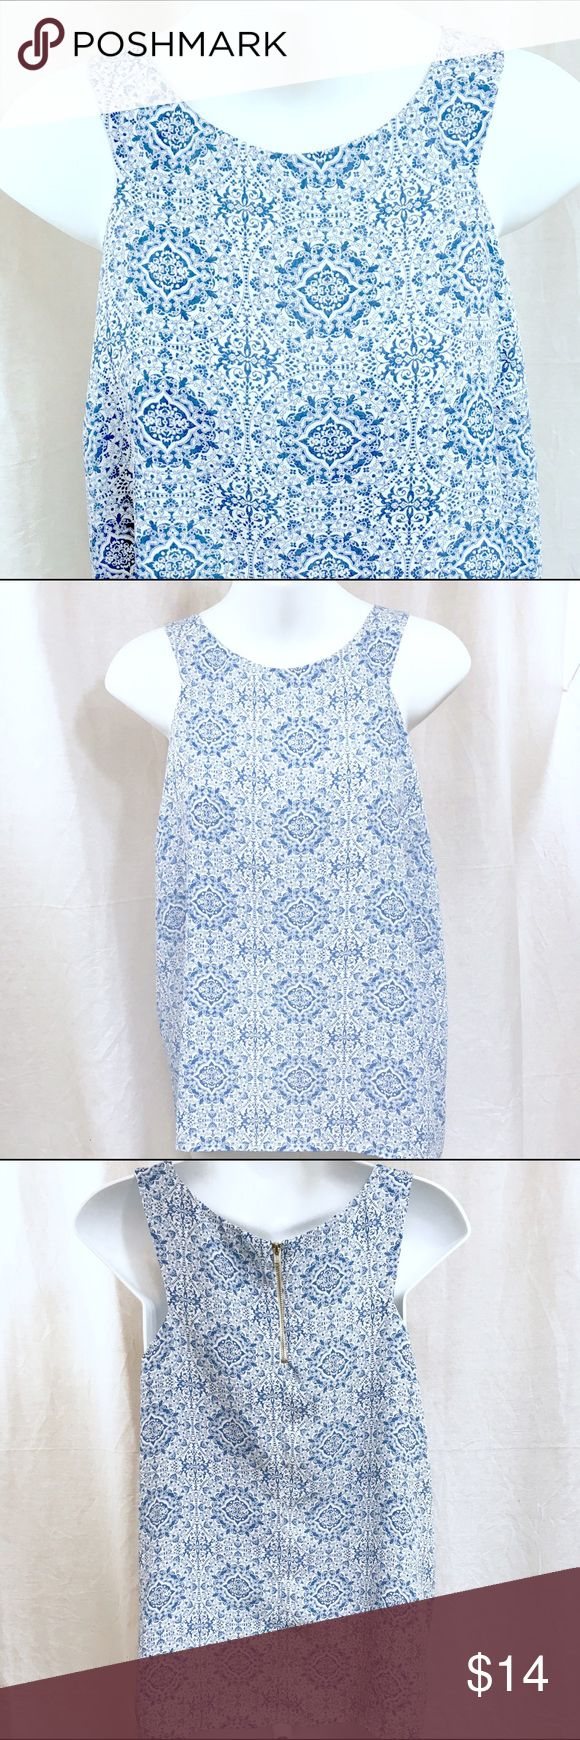 PAPER CRANE Blue White Sleeveless Blouse - SMALL This gorgeous classy sleeveless blouse is in excellent condition! It has been very gently worn. There are no spots or flaws on it. Paper Crane Tops Blouses